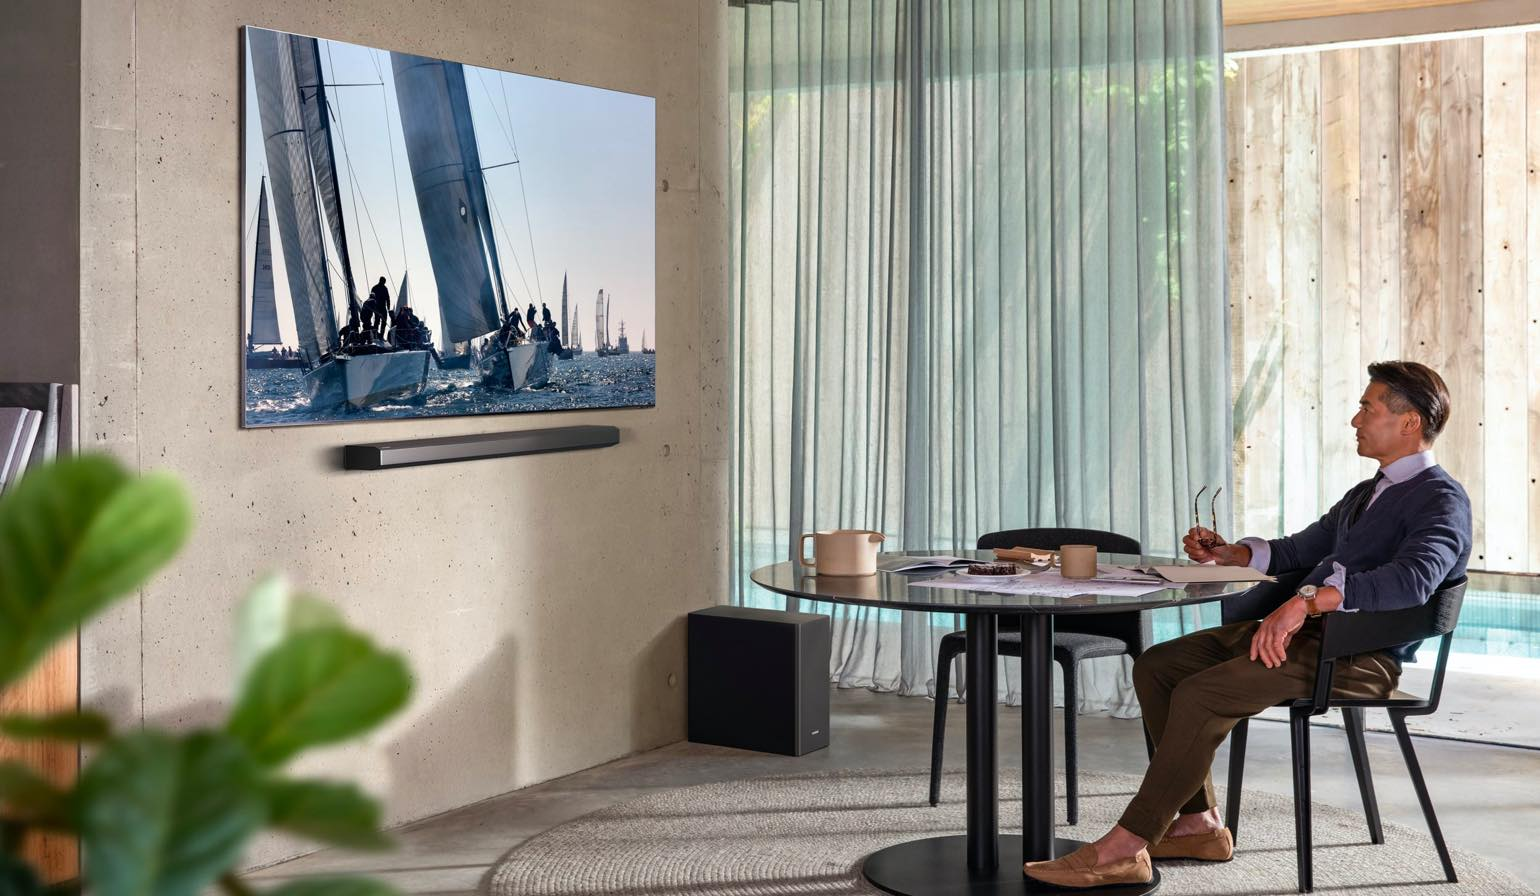 Samsung 2020 tv line-up, met 8K en 4K QLED tv's